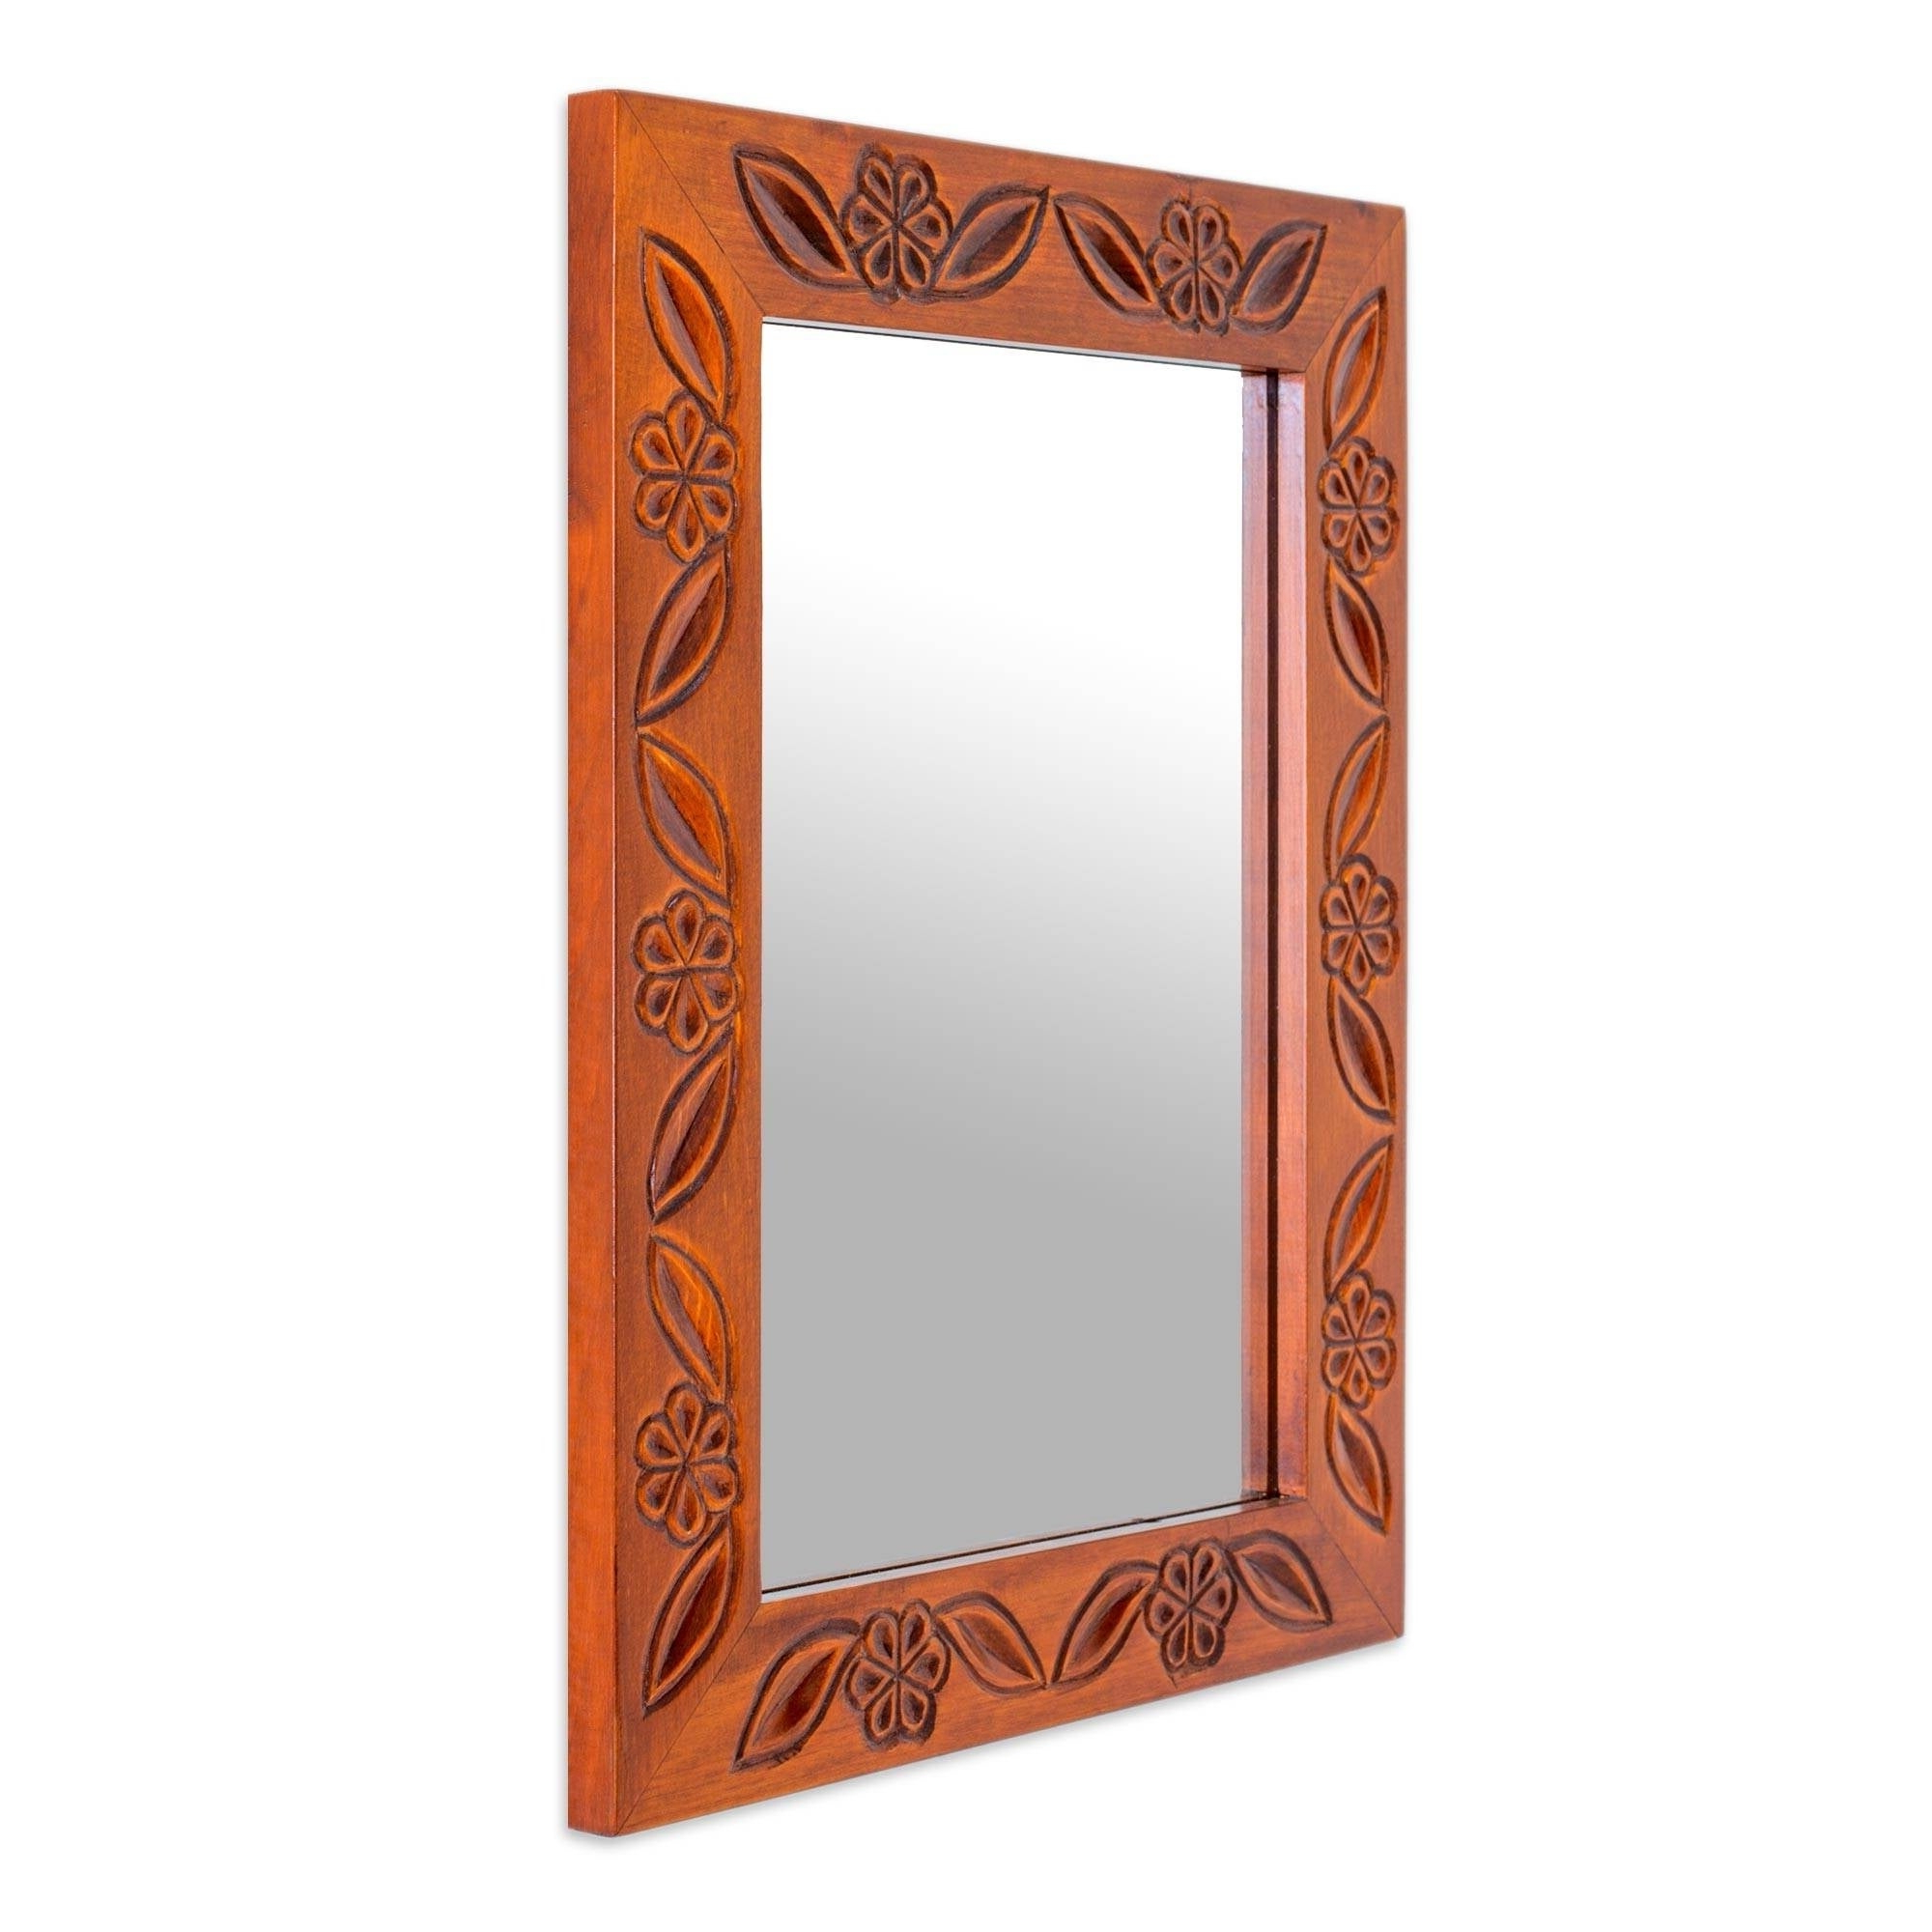 Handmade Pinewood 'rustic Apple Blossoms' Wall Mirror (Guatemala) – Orange Regarding Current Orange Wall Mirrors (View 10 of 20)